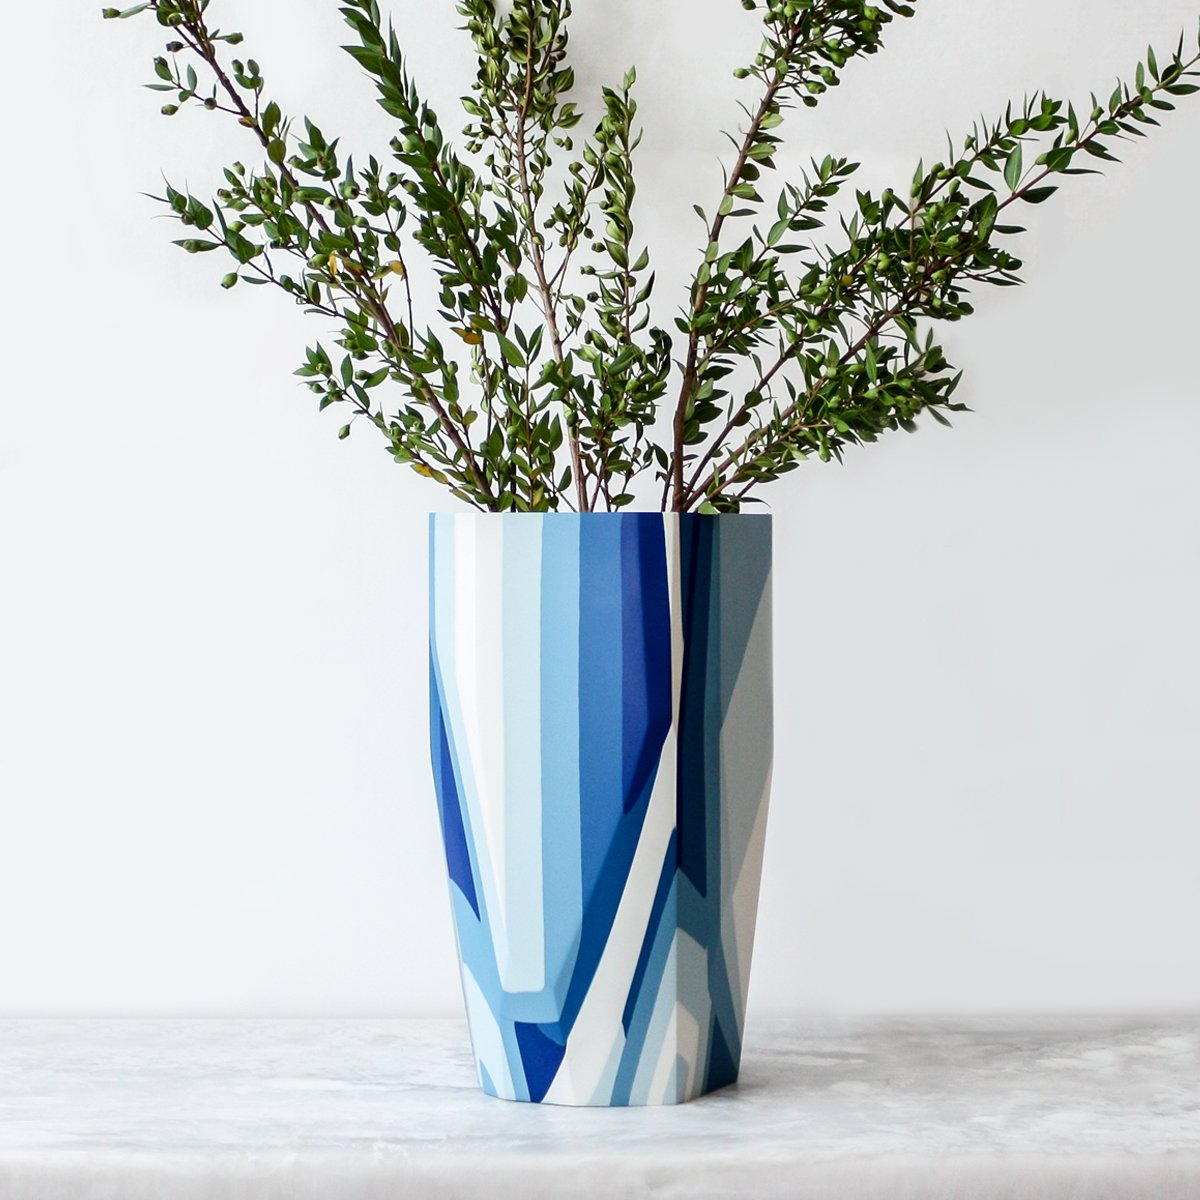 Lands End Vase made of resin and plaster in shades of blue by Anyon and Elyse Graham